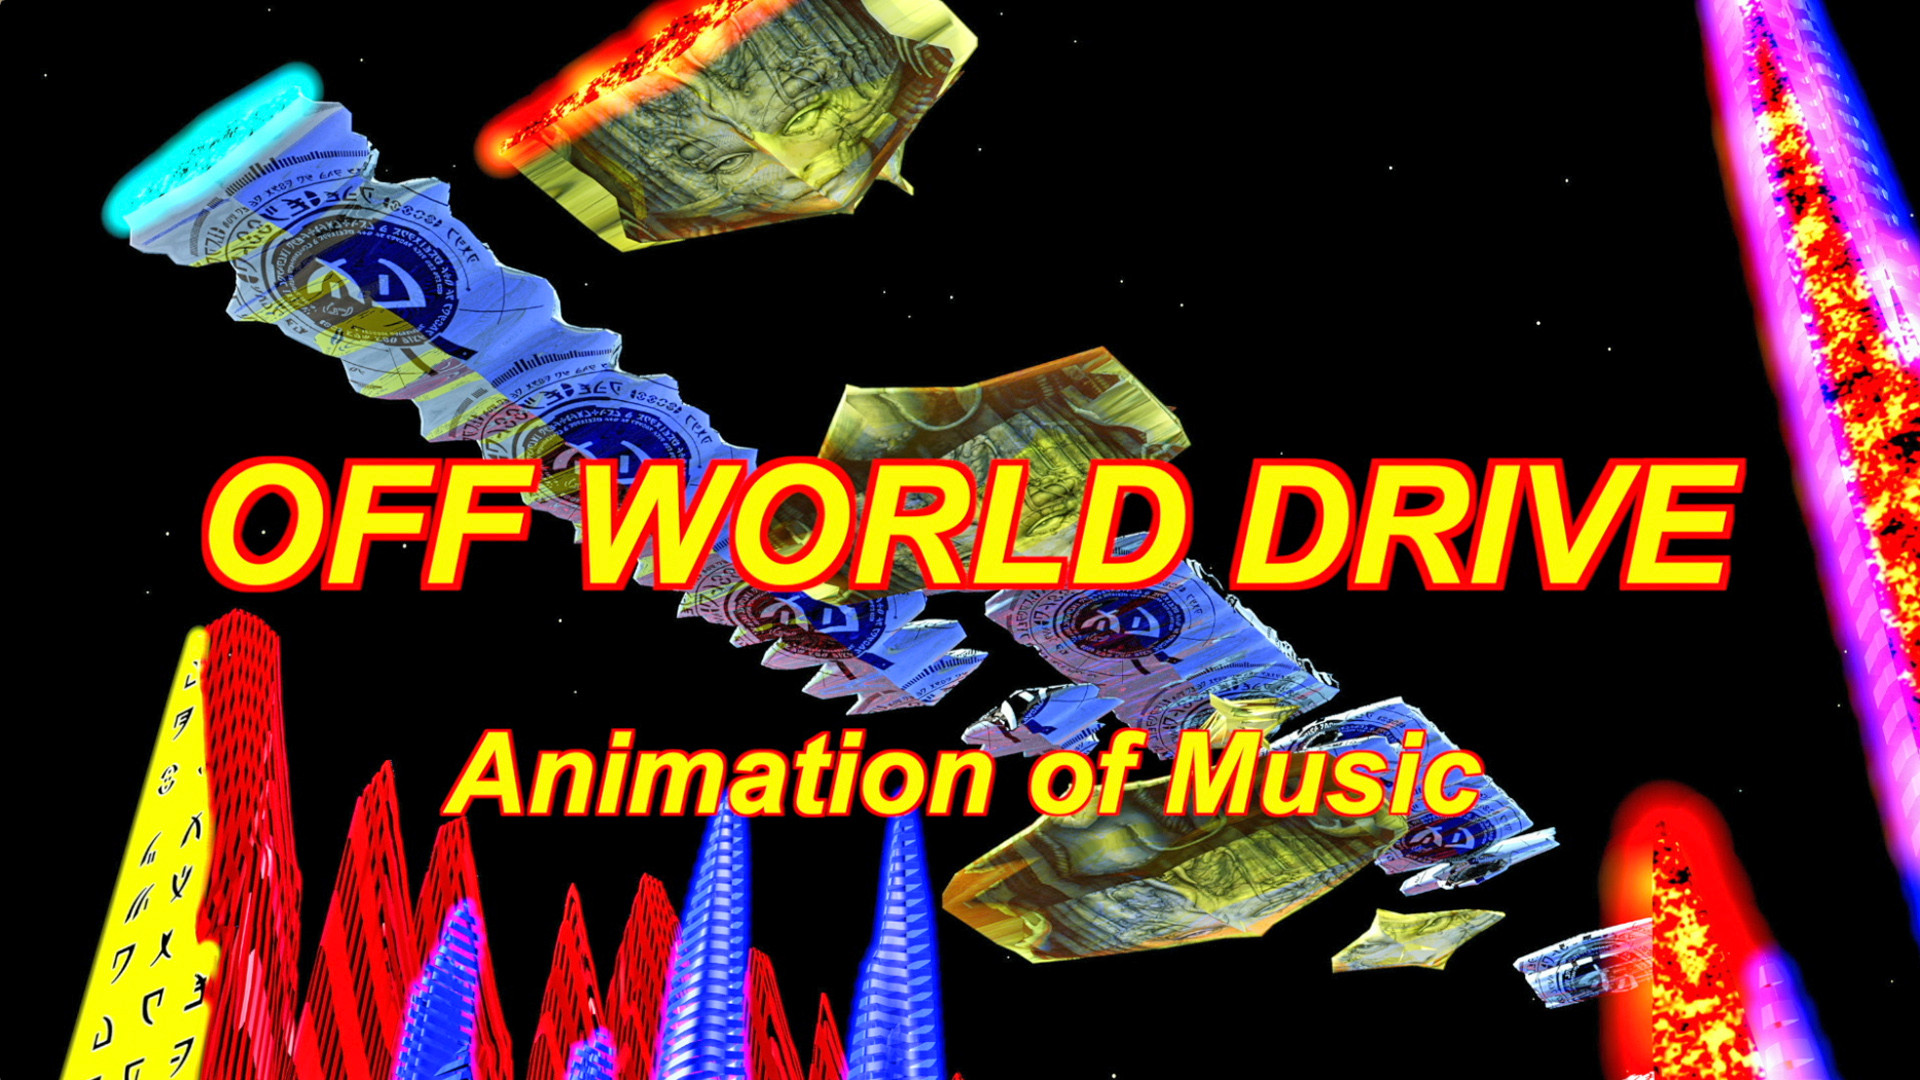 Off World Drive - Animation of Music